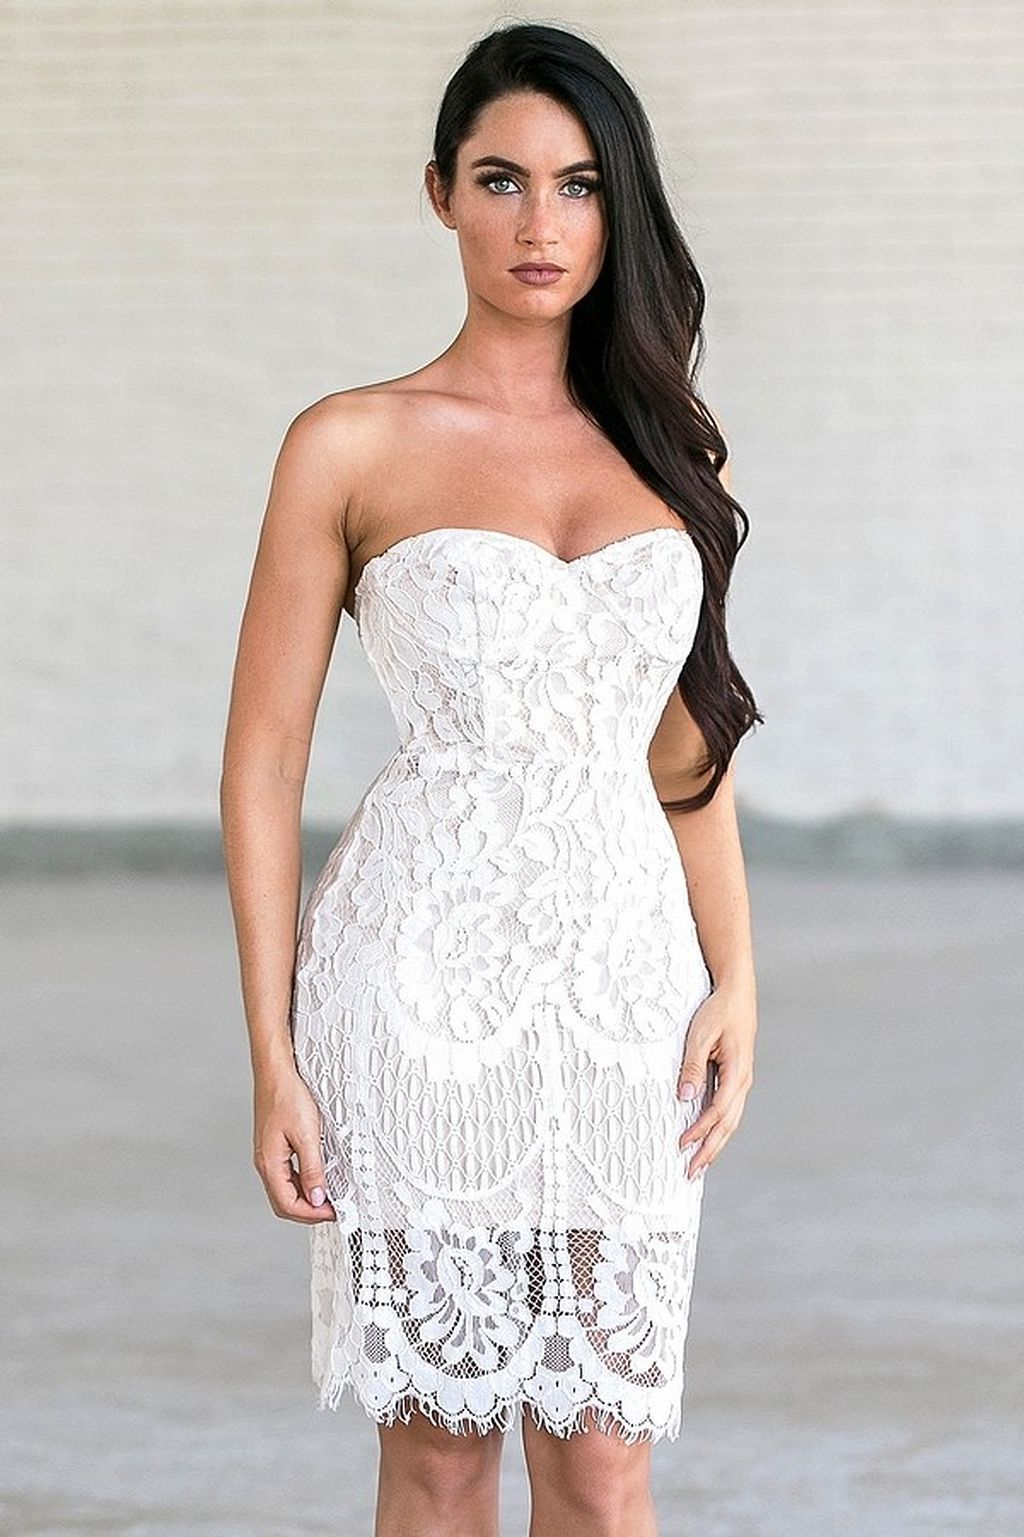 Tips For Looking Your Best On Your Wedding Day Luxebc White Lace Cocktail Dress Cocktail Dress Lace Cute Lace Dresses [ 1537 x 1024 Pixel ]